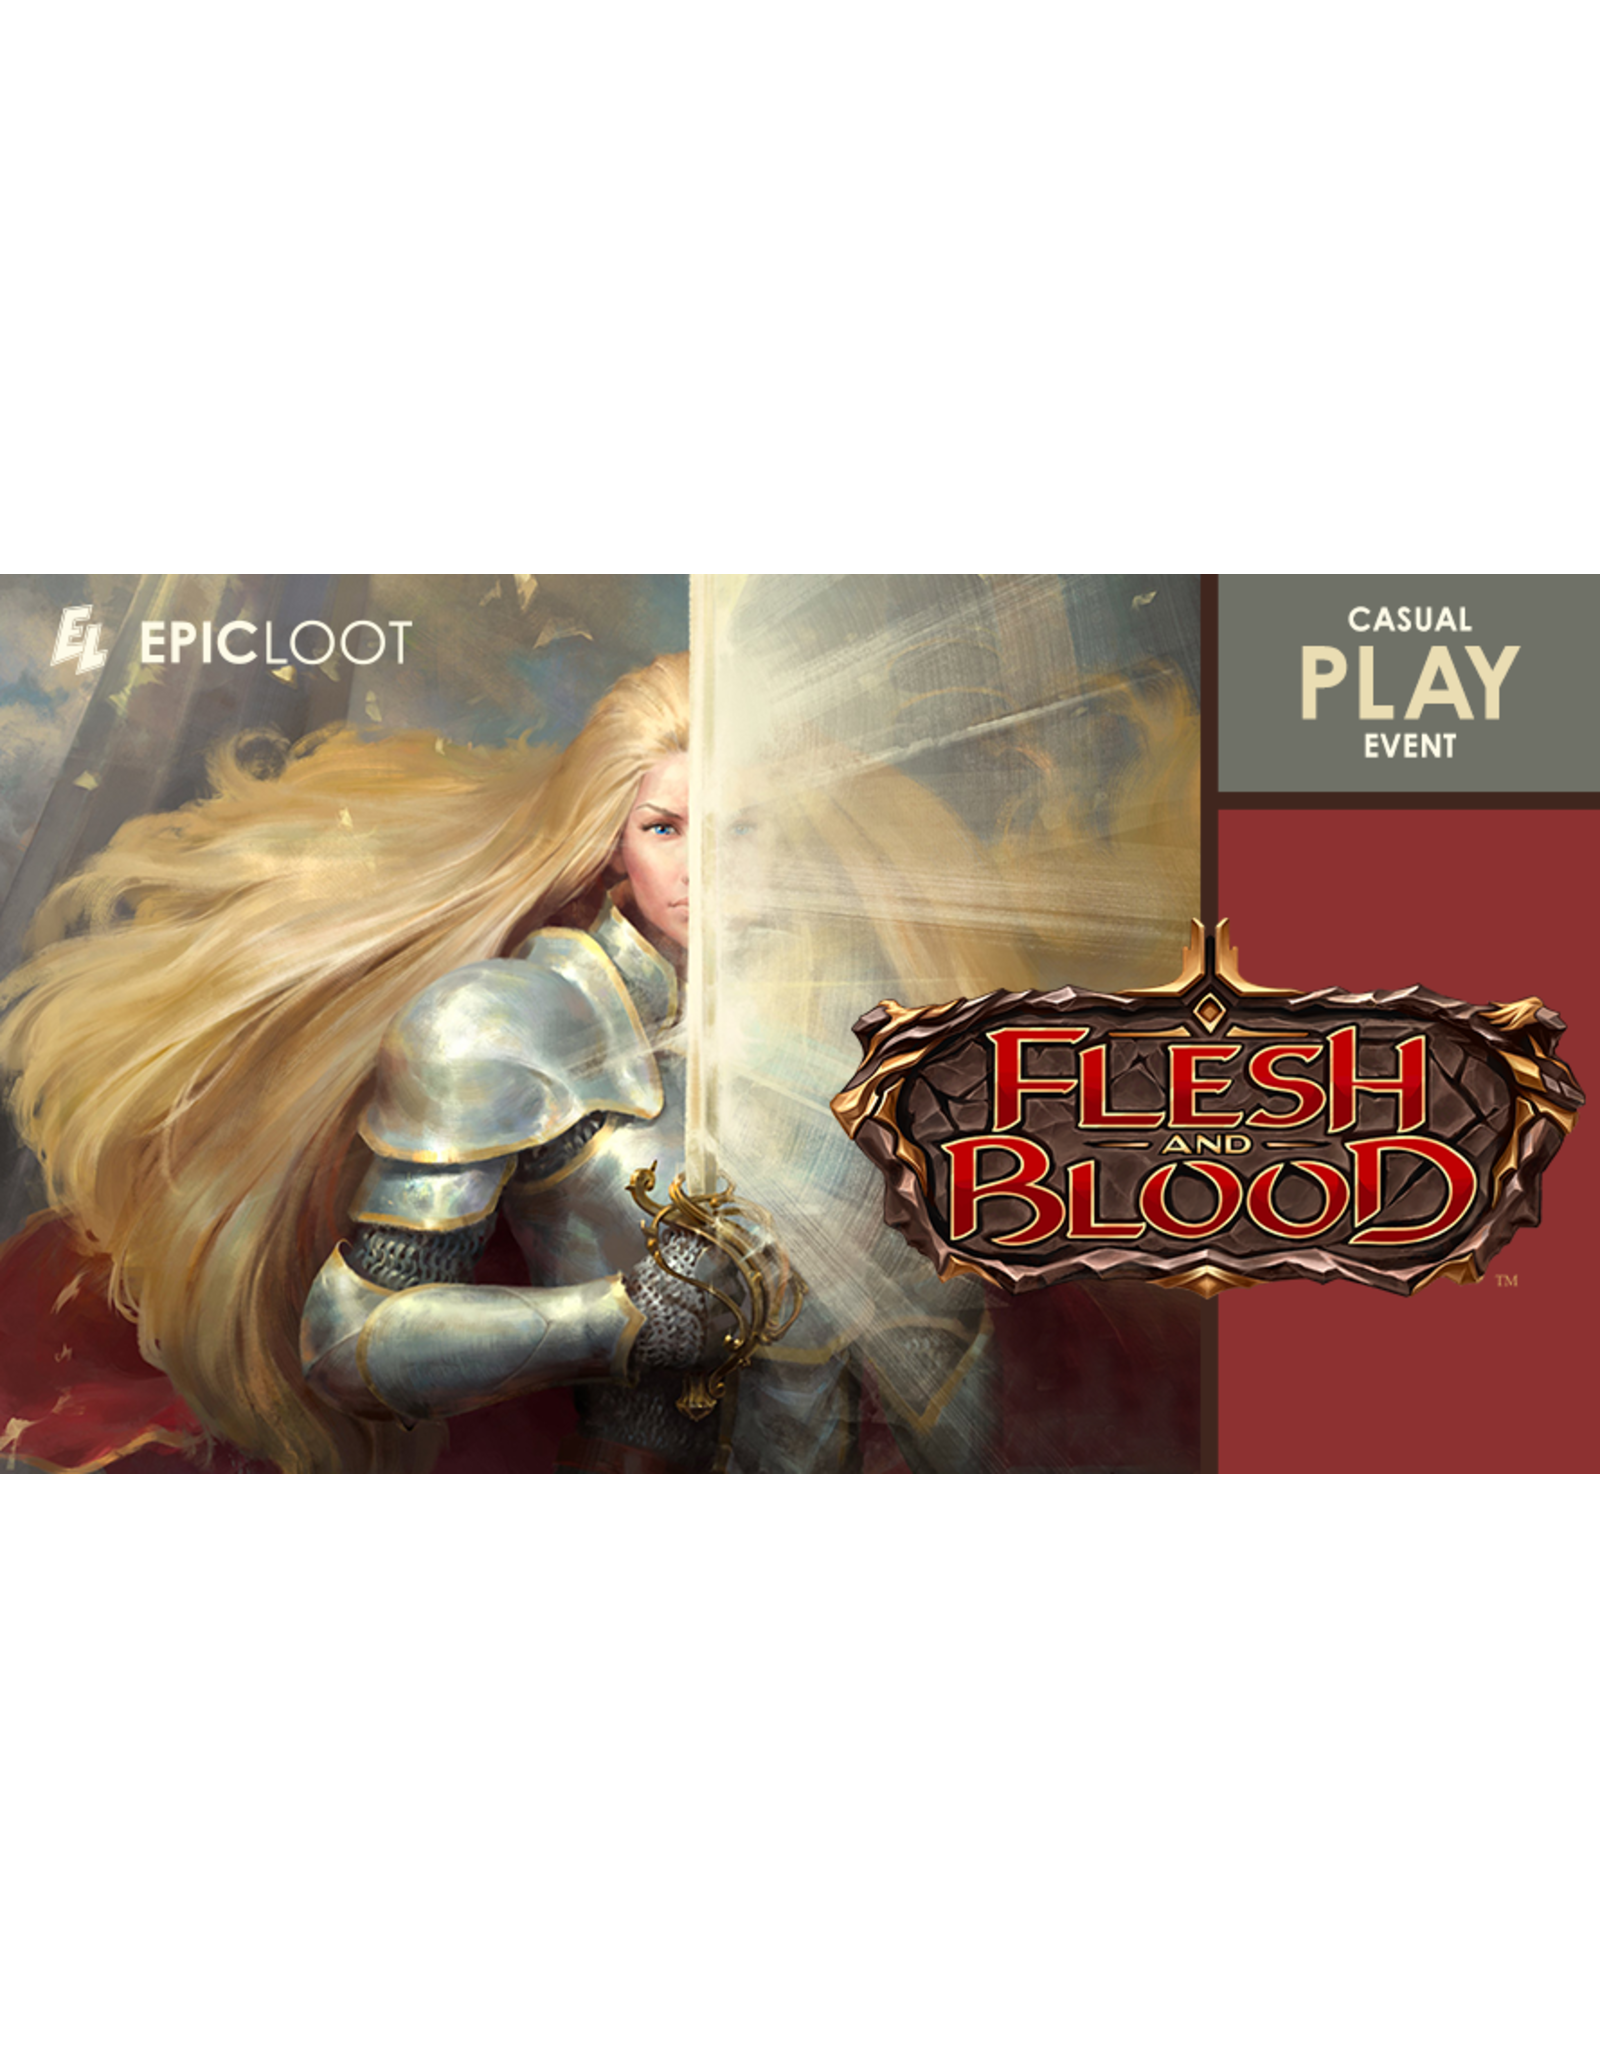 Flesh and Blood Casual Play 6/17/21 - 5:00pm